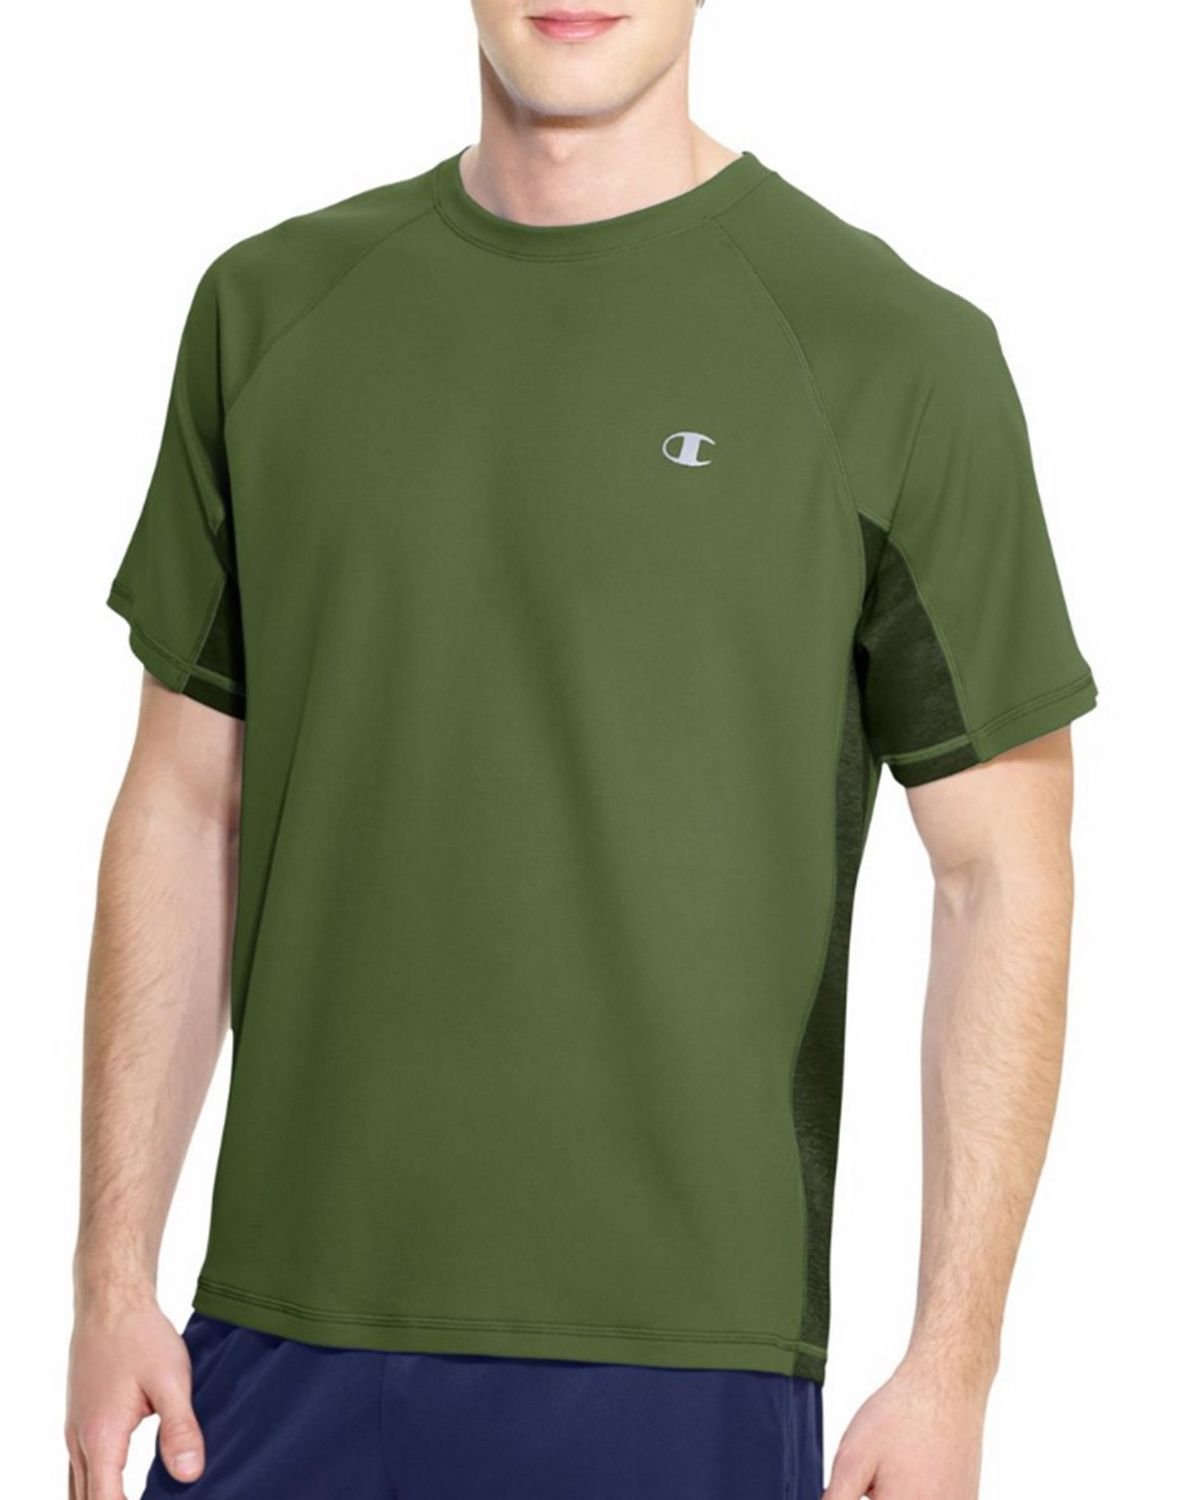 Champion T6608 Vapor PowerTrain Colorblock Tee - Service Green/Bottle Green - M T6608